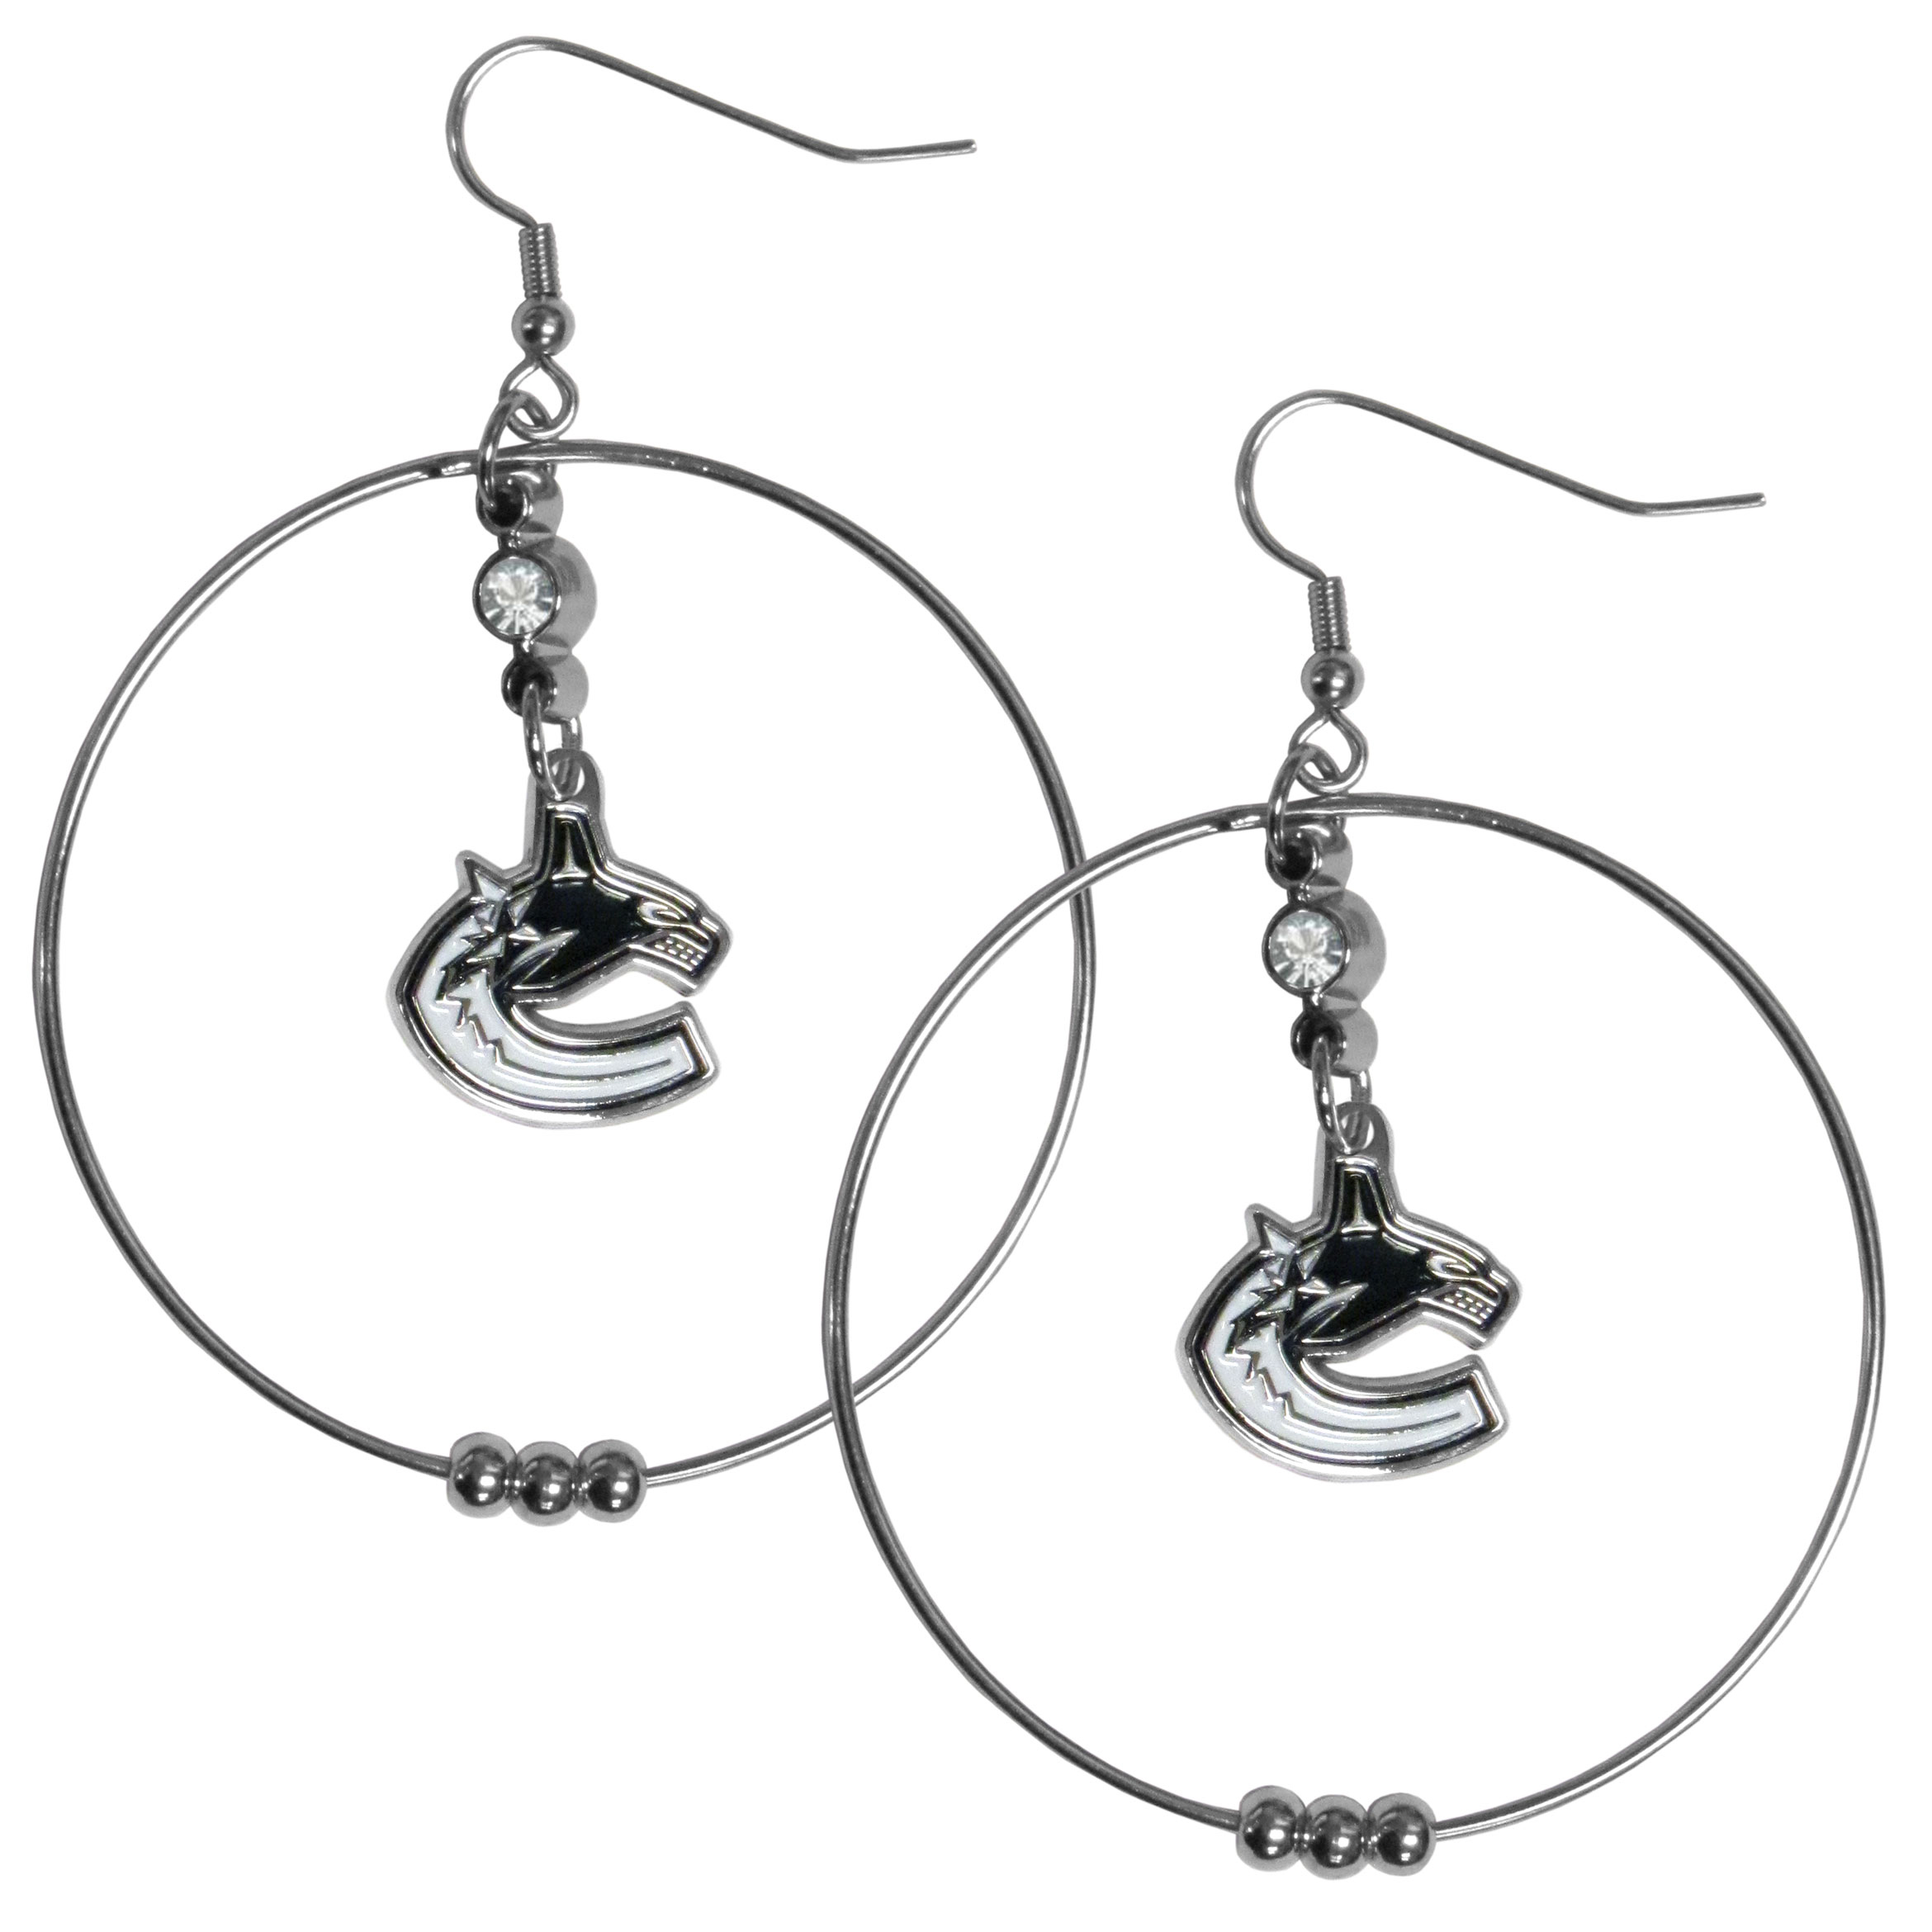 Vancouver Canucks® 2 Inch Hoop Earrings - Our large hoop earrings have a fully cast and enameled Vancouver Canucks® charm with enameled detail and a high polish nickel free chrome finish and rhinestone access. Hypoallergenic fishhook posts.